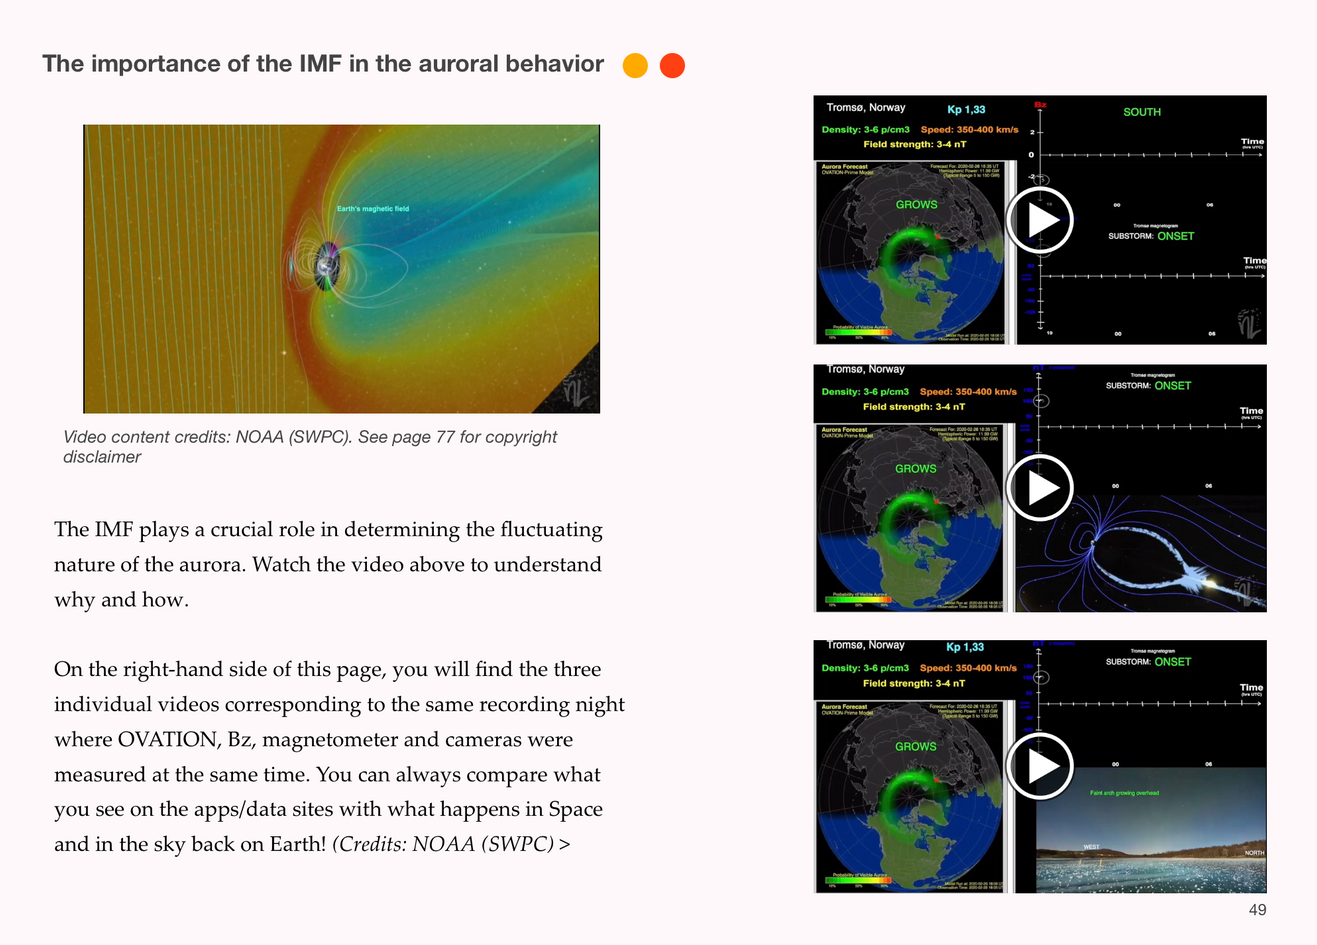 We also expand a great deal on the misunderstood 'substorm' phenomenon, which happens all the time during the creation of aurora.   We detail how the IMF plays a role on activating the substorm process in very detailed videos and imagery.